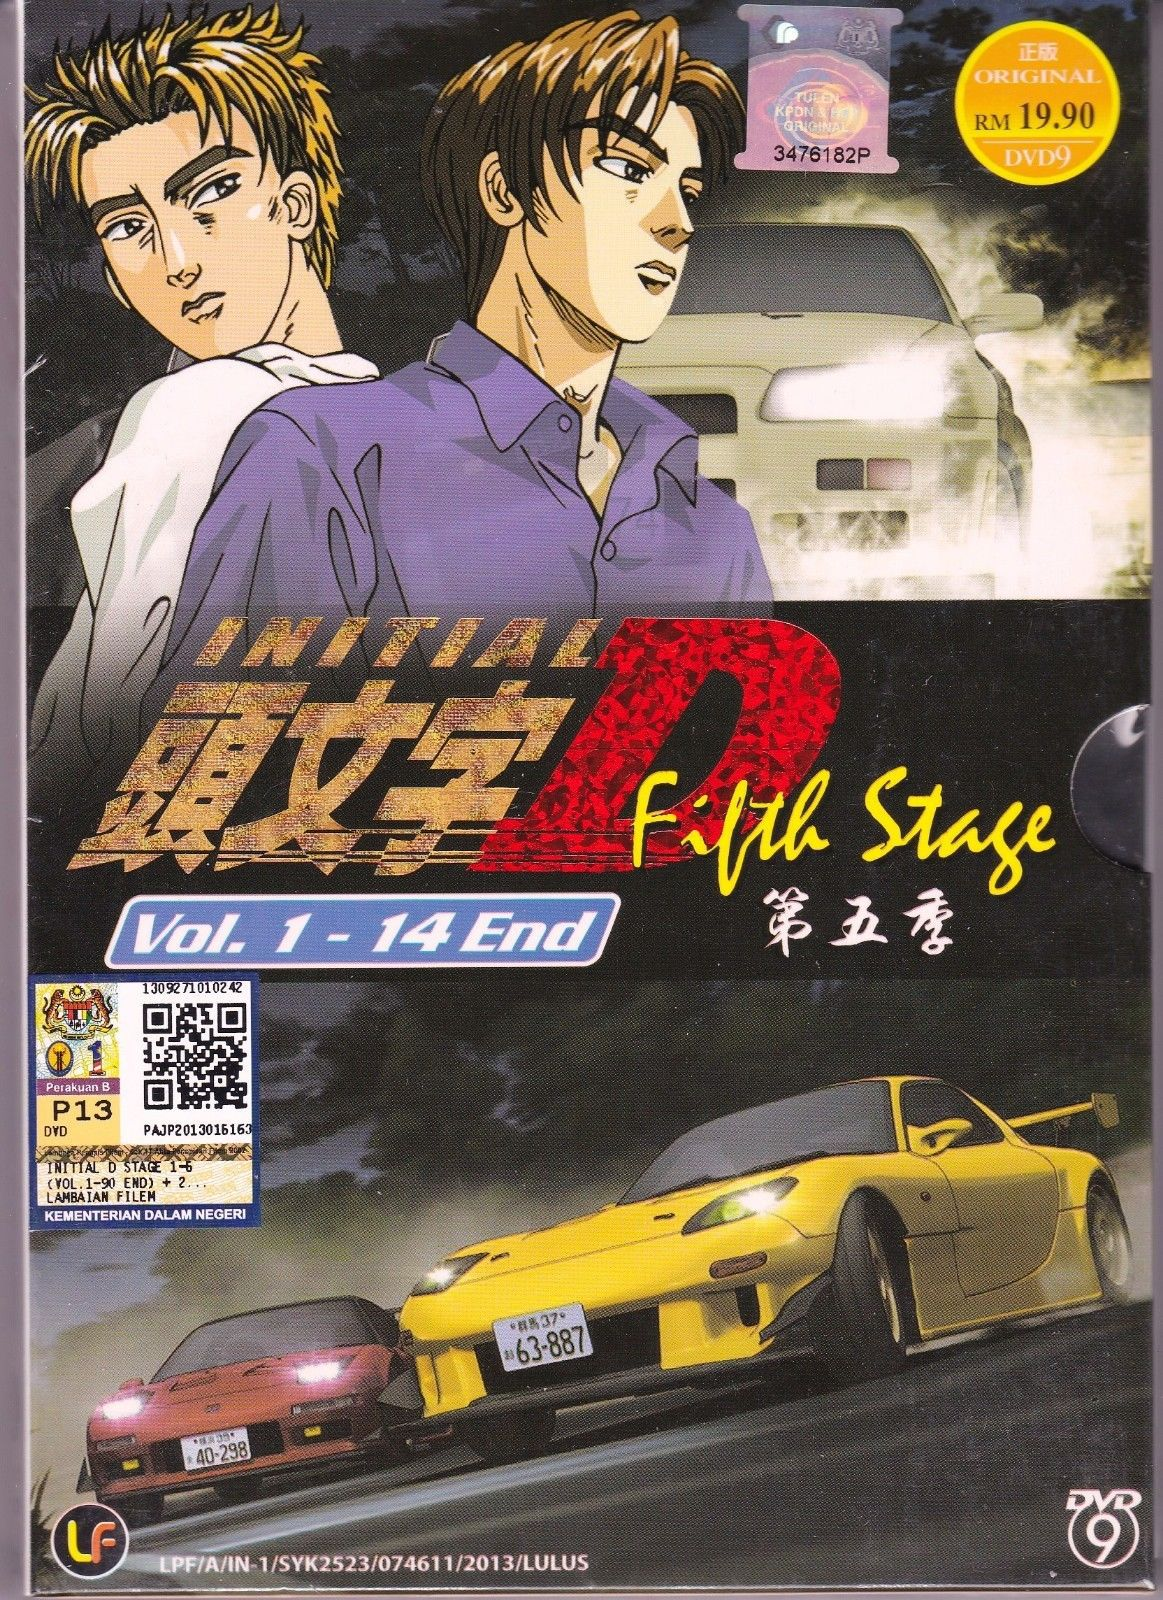 dvd anime initial d fifth stage 5 vol 1 14 end racing car toyota ae86 region all dvd hd dvd. Black Bedroom Furniture Sets. Home Design Ideas